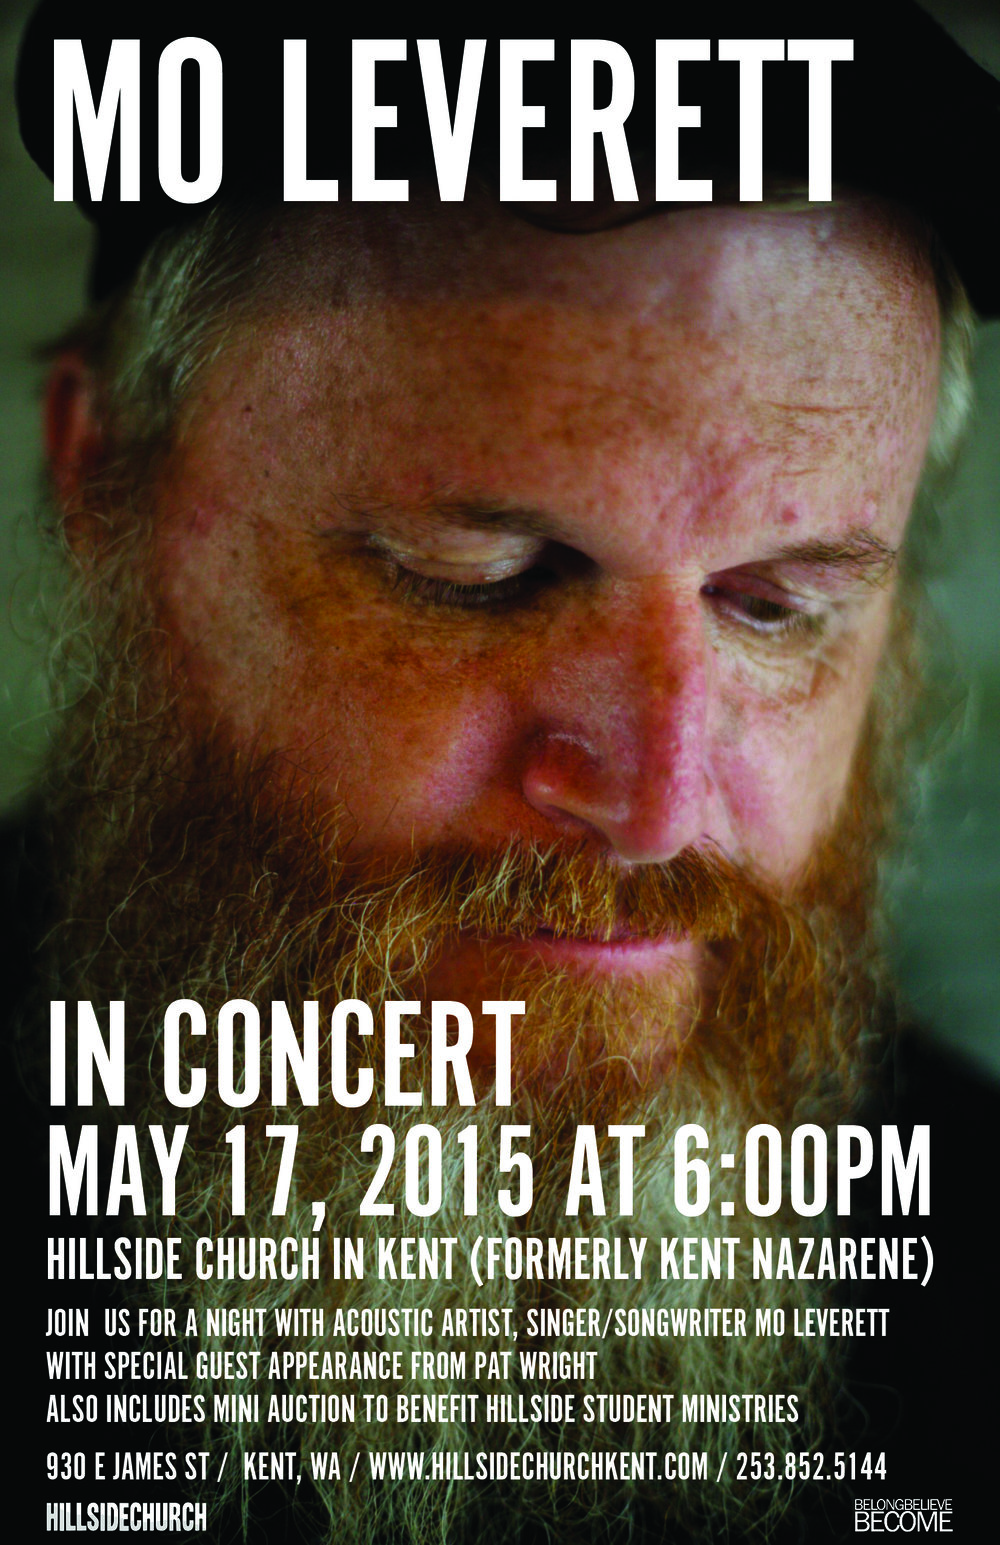 150517 Mo Leverett In Concert Poster 2.0 Small.jpg